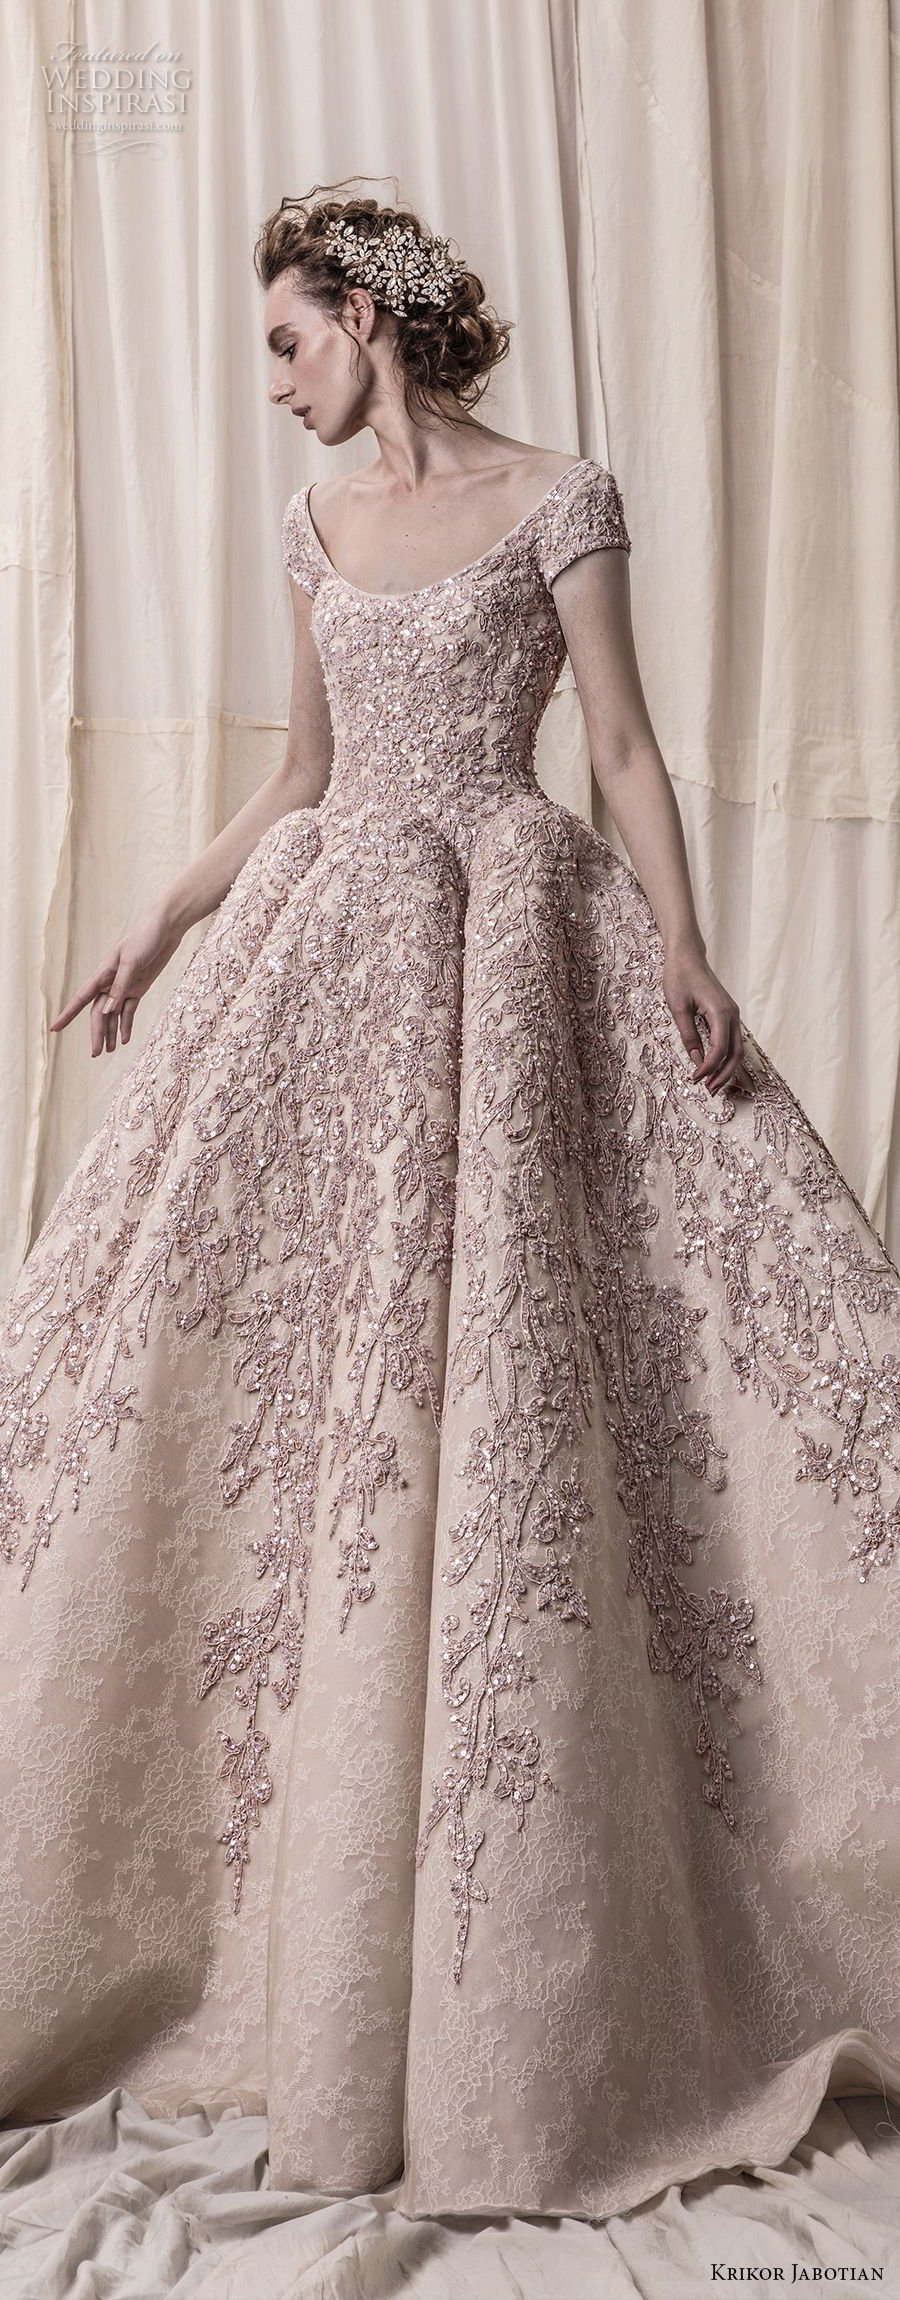 krikor jabotian spring 2018 bridal cap sleeves scoop neckline heavily embeliished blush color glamorous princess ball gown a line wedding dress open scoop back royal train (08) lv